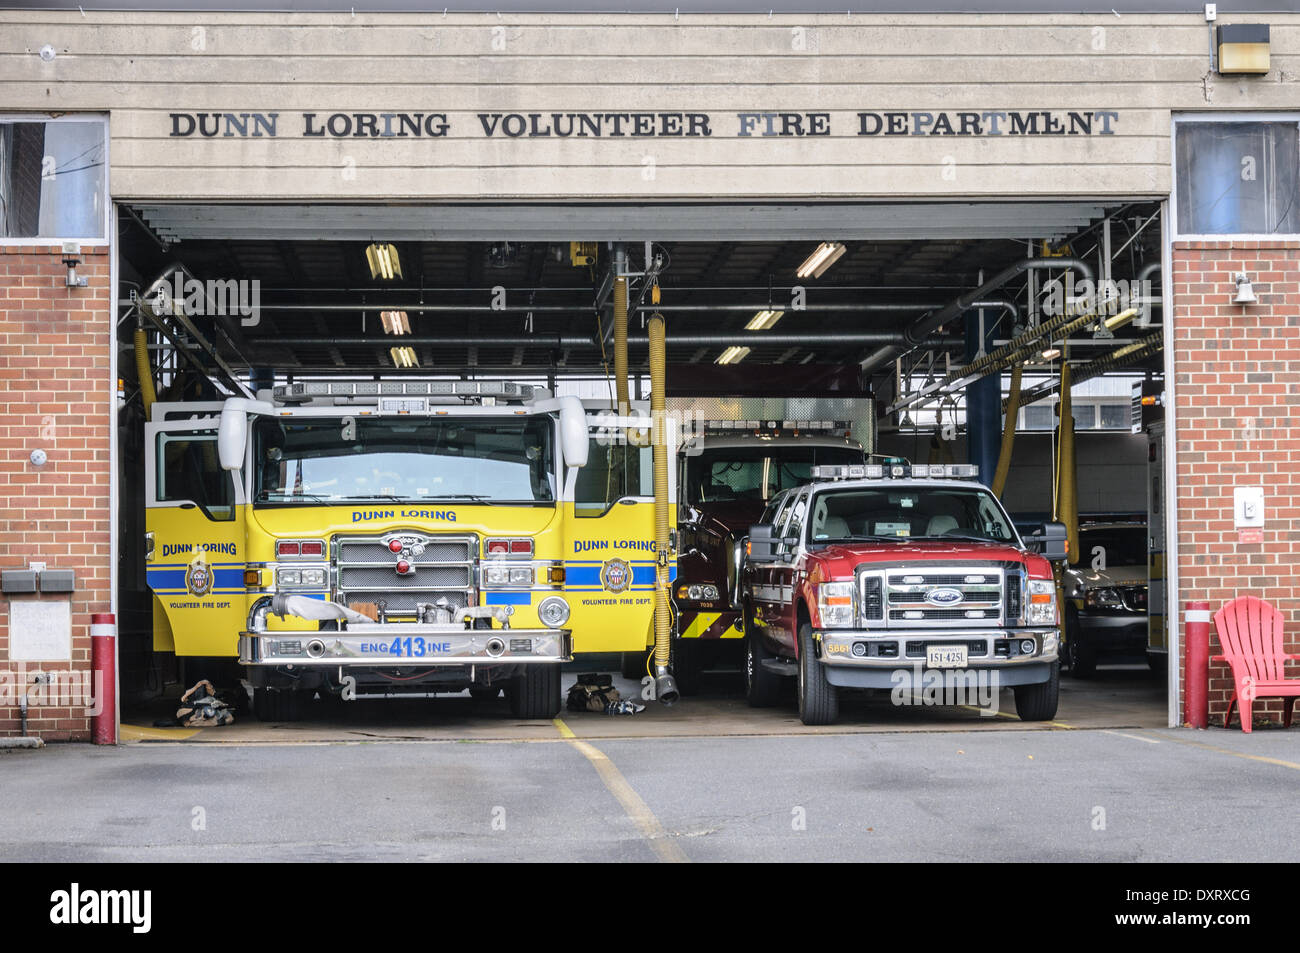 Dunn Loring Volunteer Fire Department, Gallows Road, Dunn Loring, Virginia - Stock Image